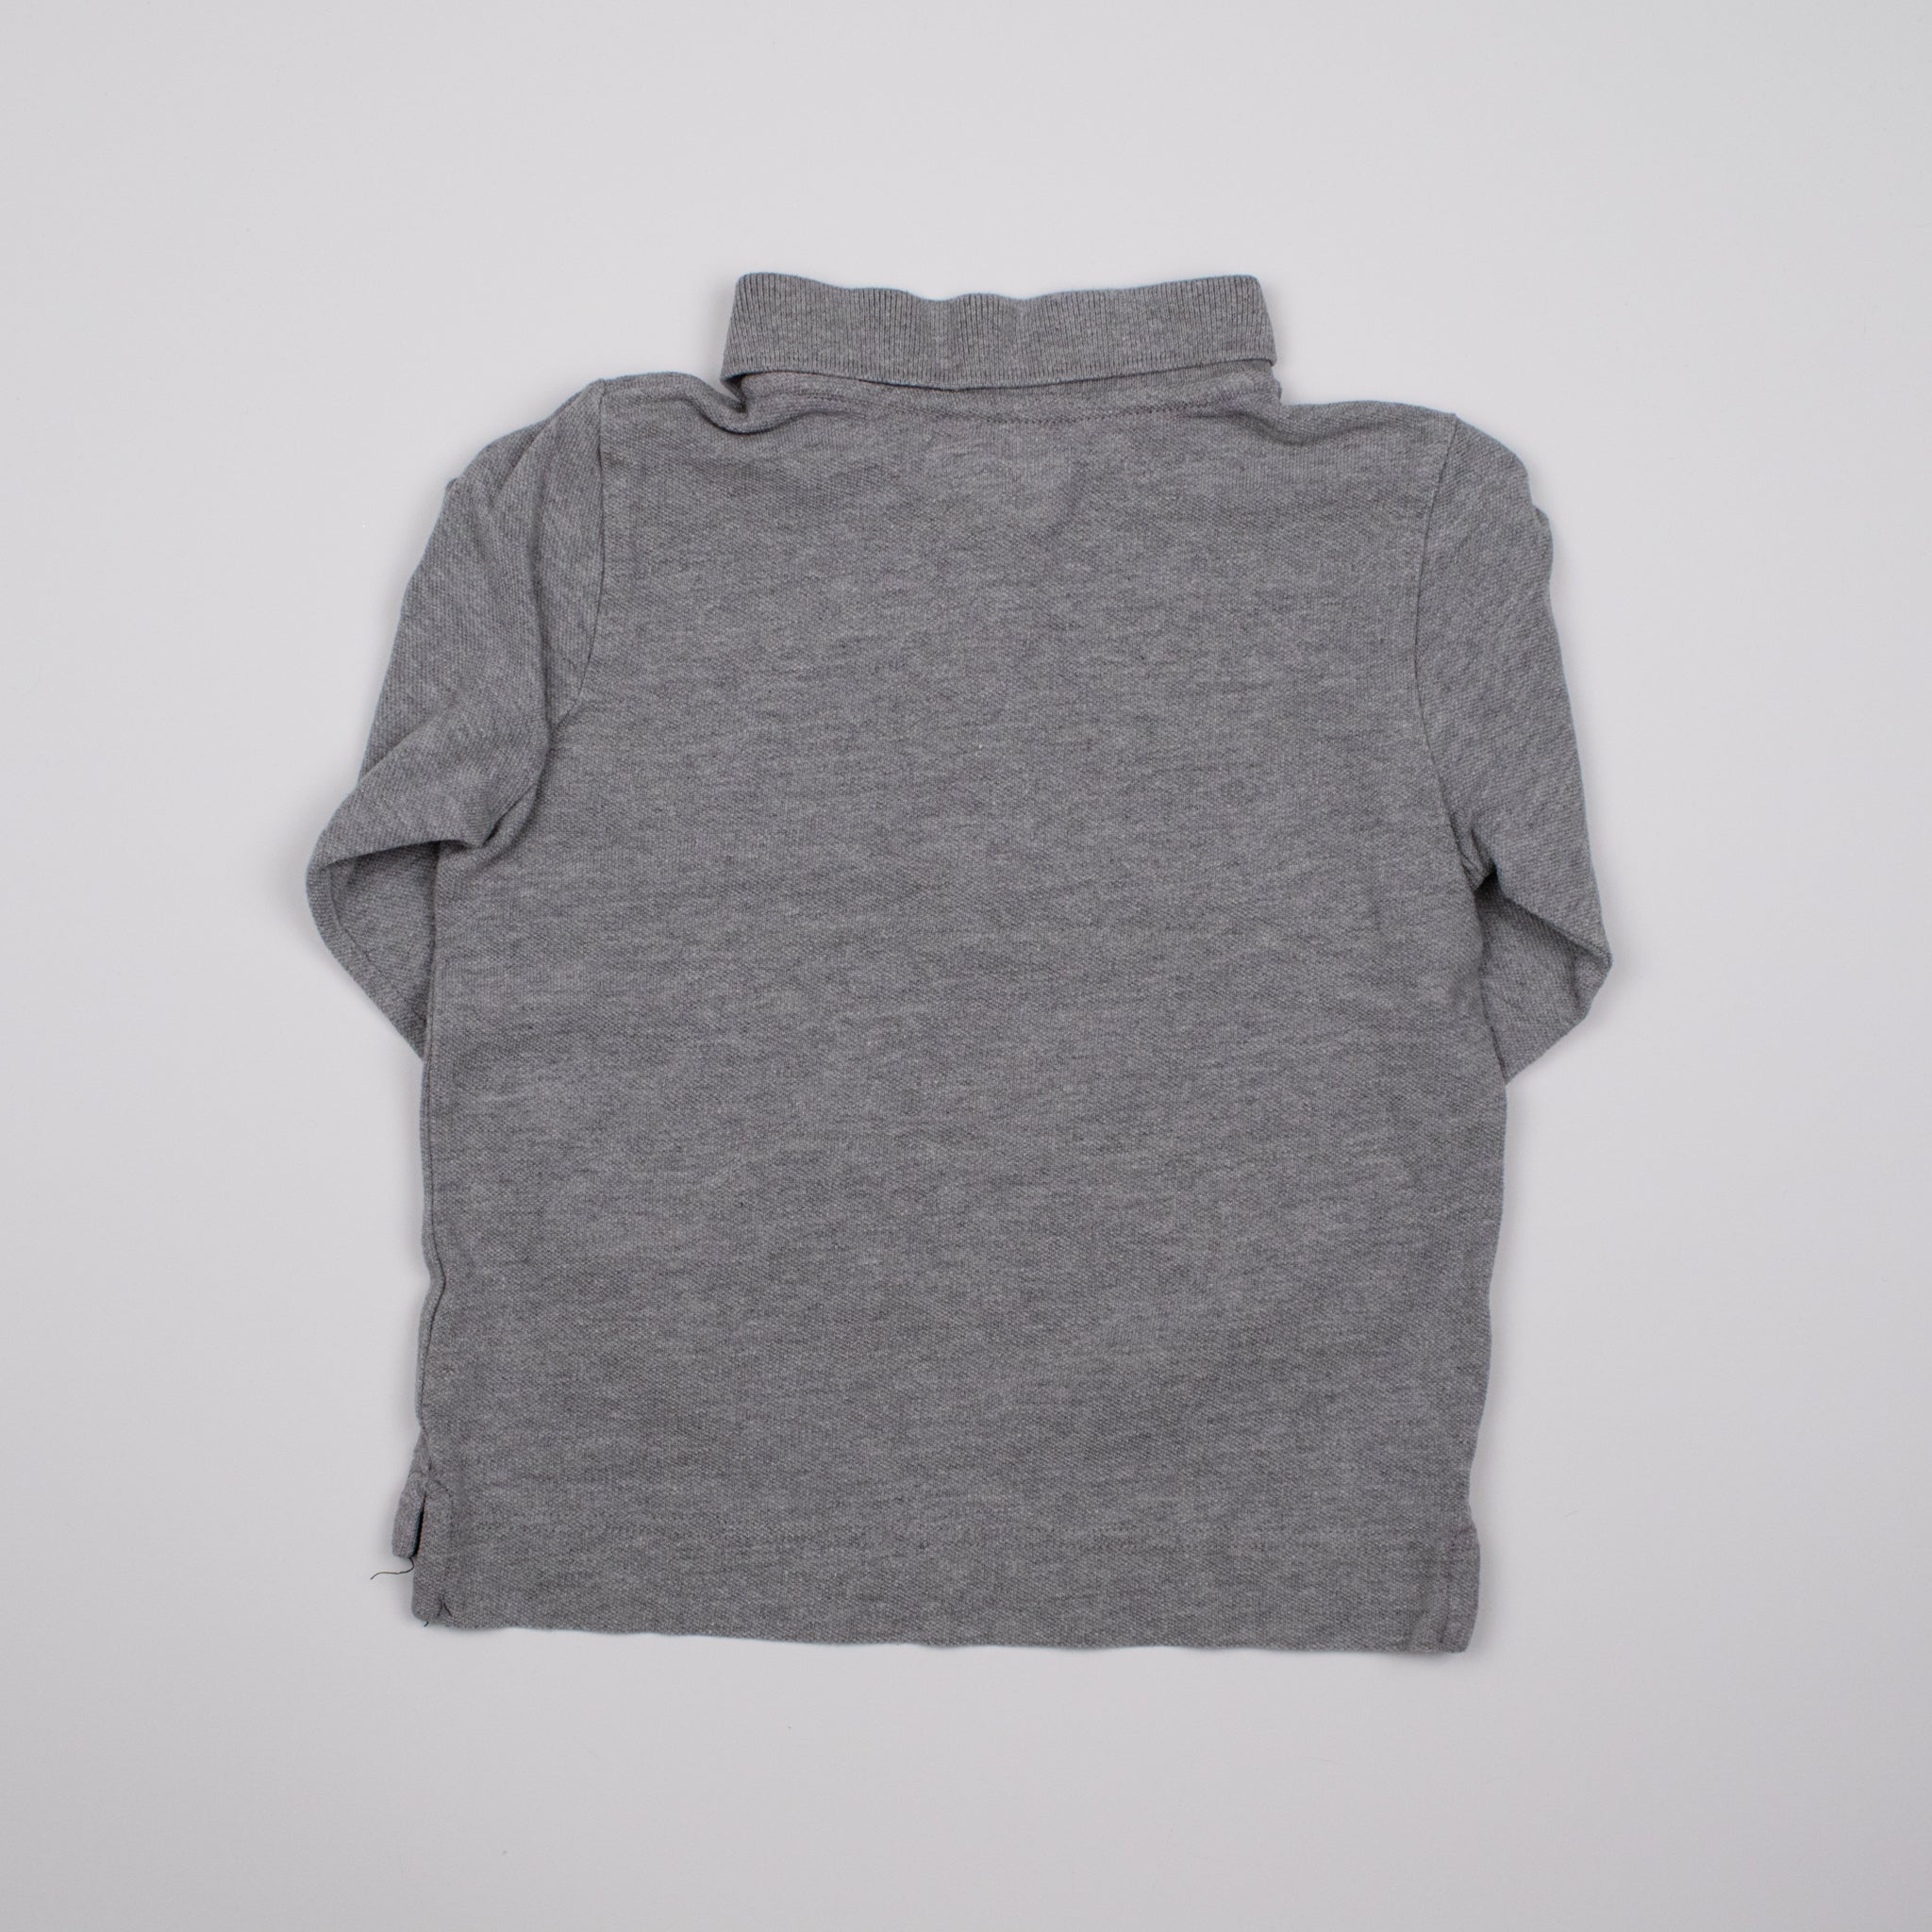 Grey Long Sleeve Tee 4-5Y